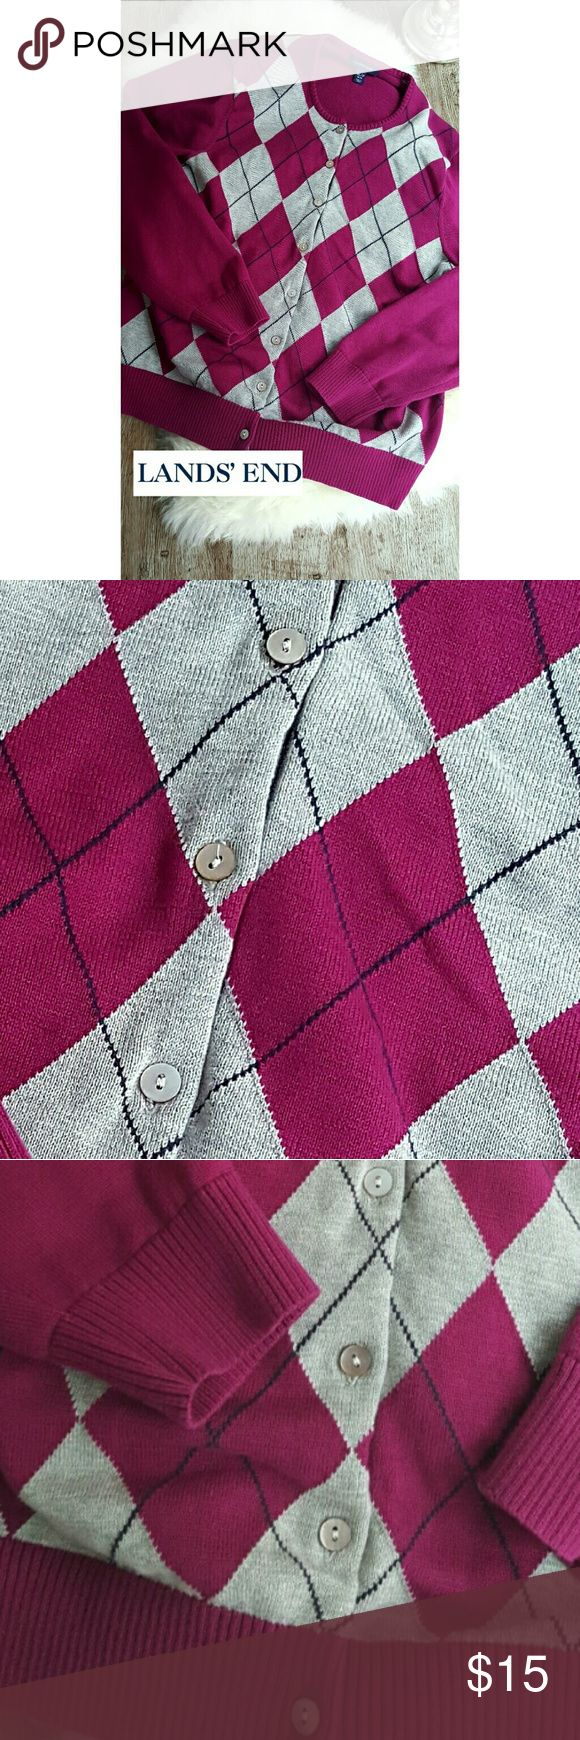 """LANDS'END LIGHT ARGYLE CARDIGAN Pretty yet practical, this light weight cardigan from quality clothing company LANDS' END is perfect for chillier spring days and summer nights with a breeze. This sweater features fuschia, gray, and black argyle patterns on the front with a solid fuschia back. Button down front. 100% cotton.   SIZE XL/ P  (18-20) ARMPIT TO ARMPIT: 21"""" SHOULDER TO HEM: 23"""" Measurements are taken laying flat and are APPROXIMATE!   ALL ITEMS FROM A NON-SMOKING home.  BUNDLE AND…"""